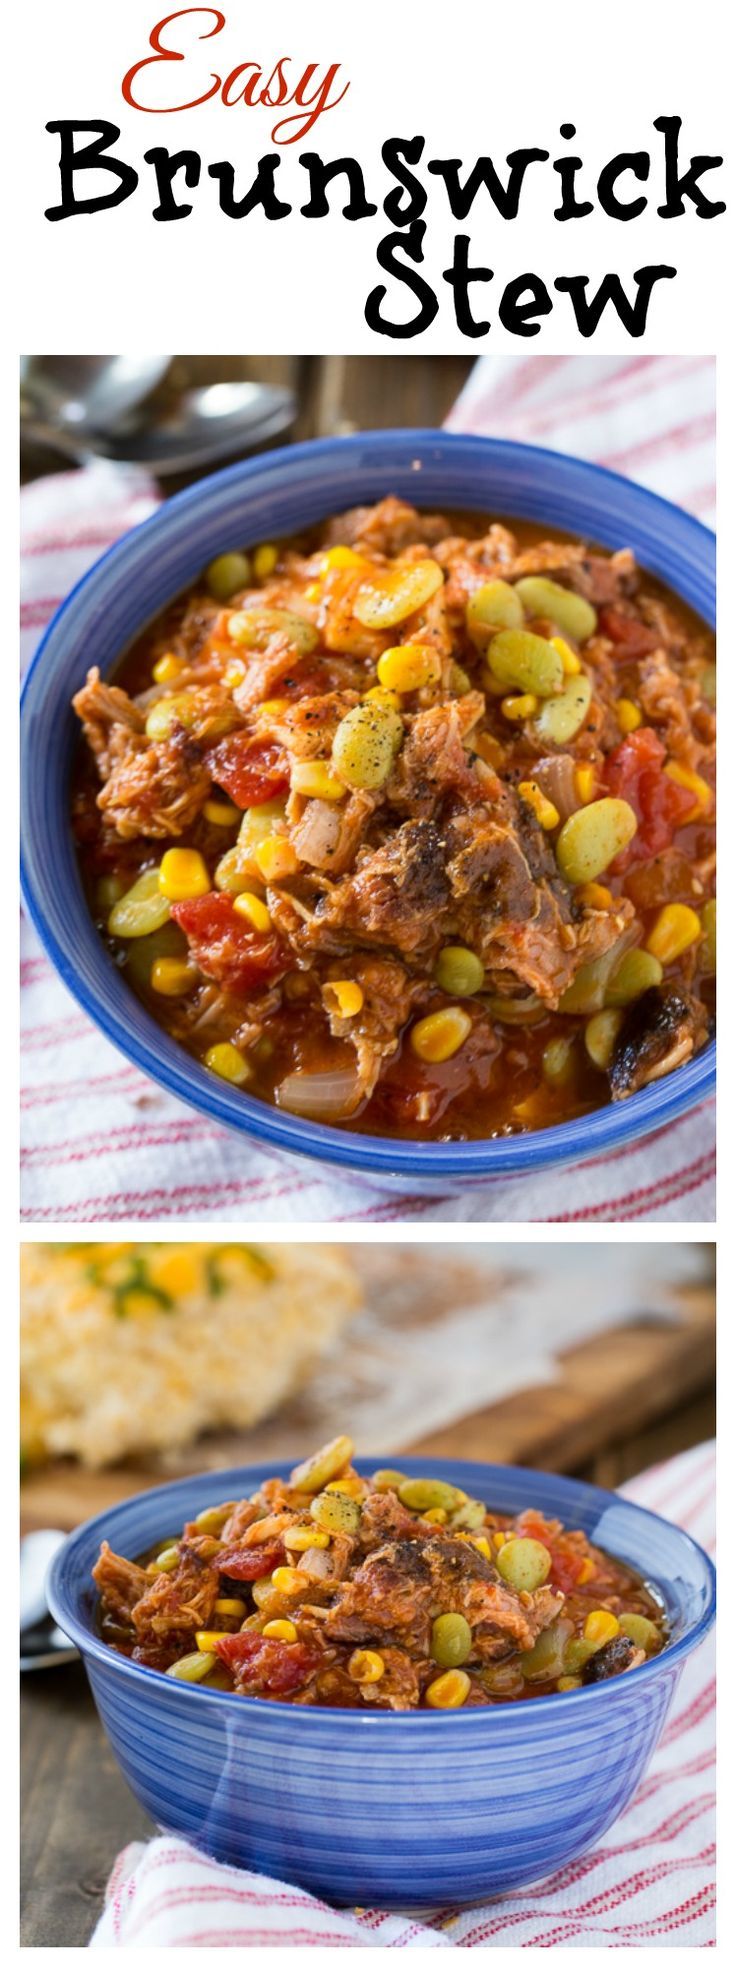 Easy Brunswick Stew with pulled pork and chicken. Can also use leftover Thanksgiving turkey.